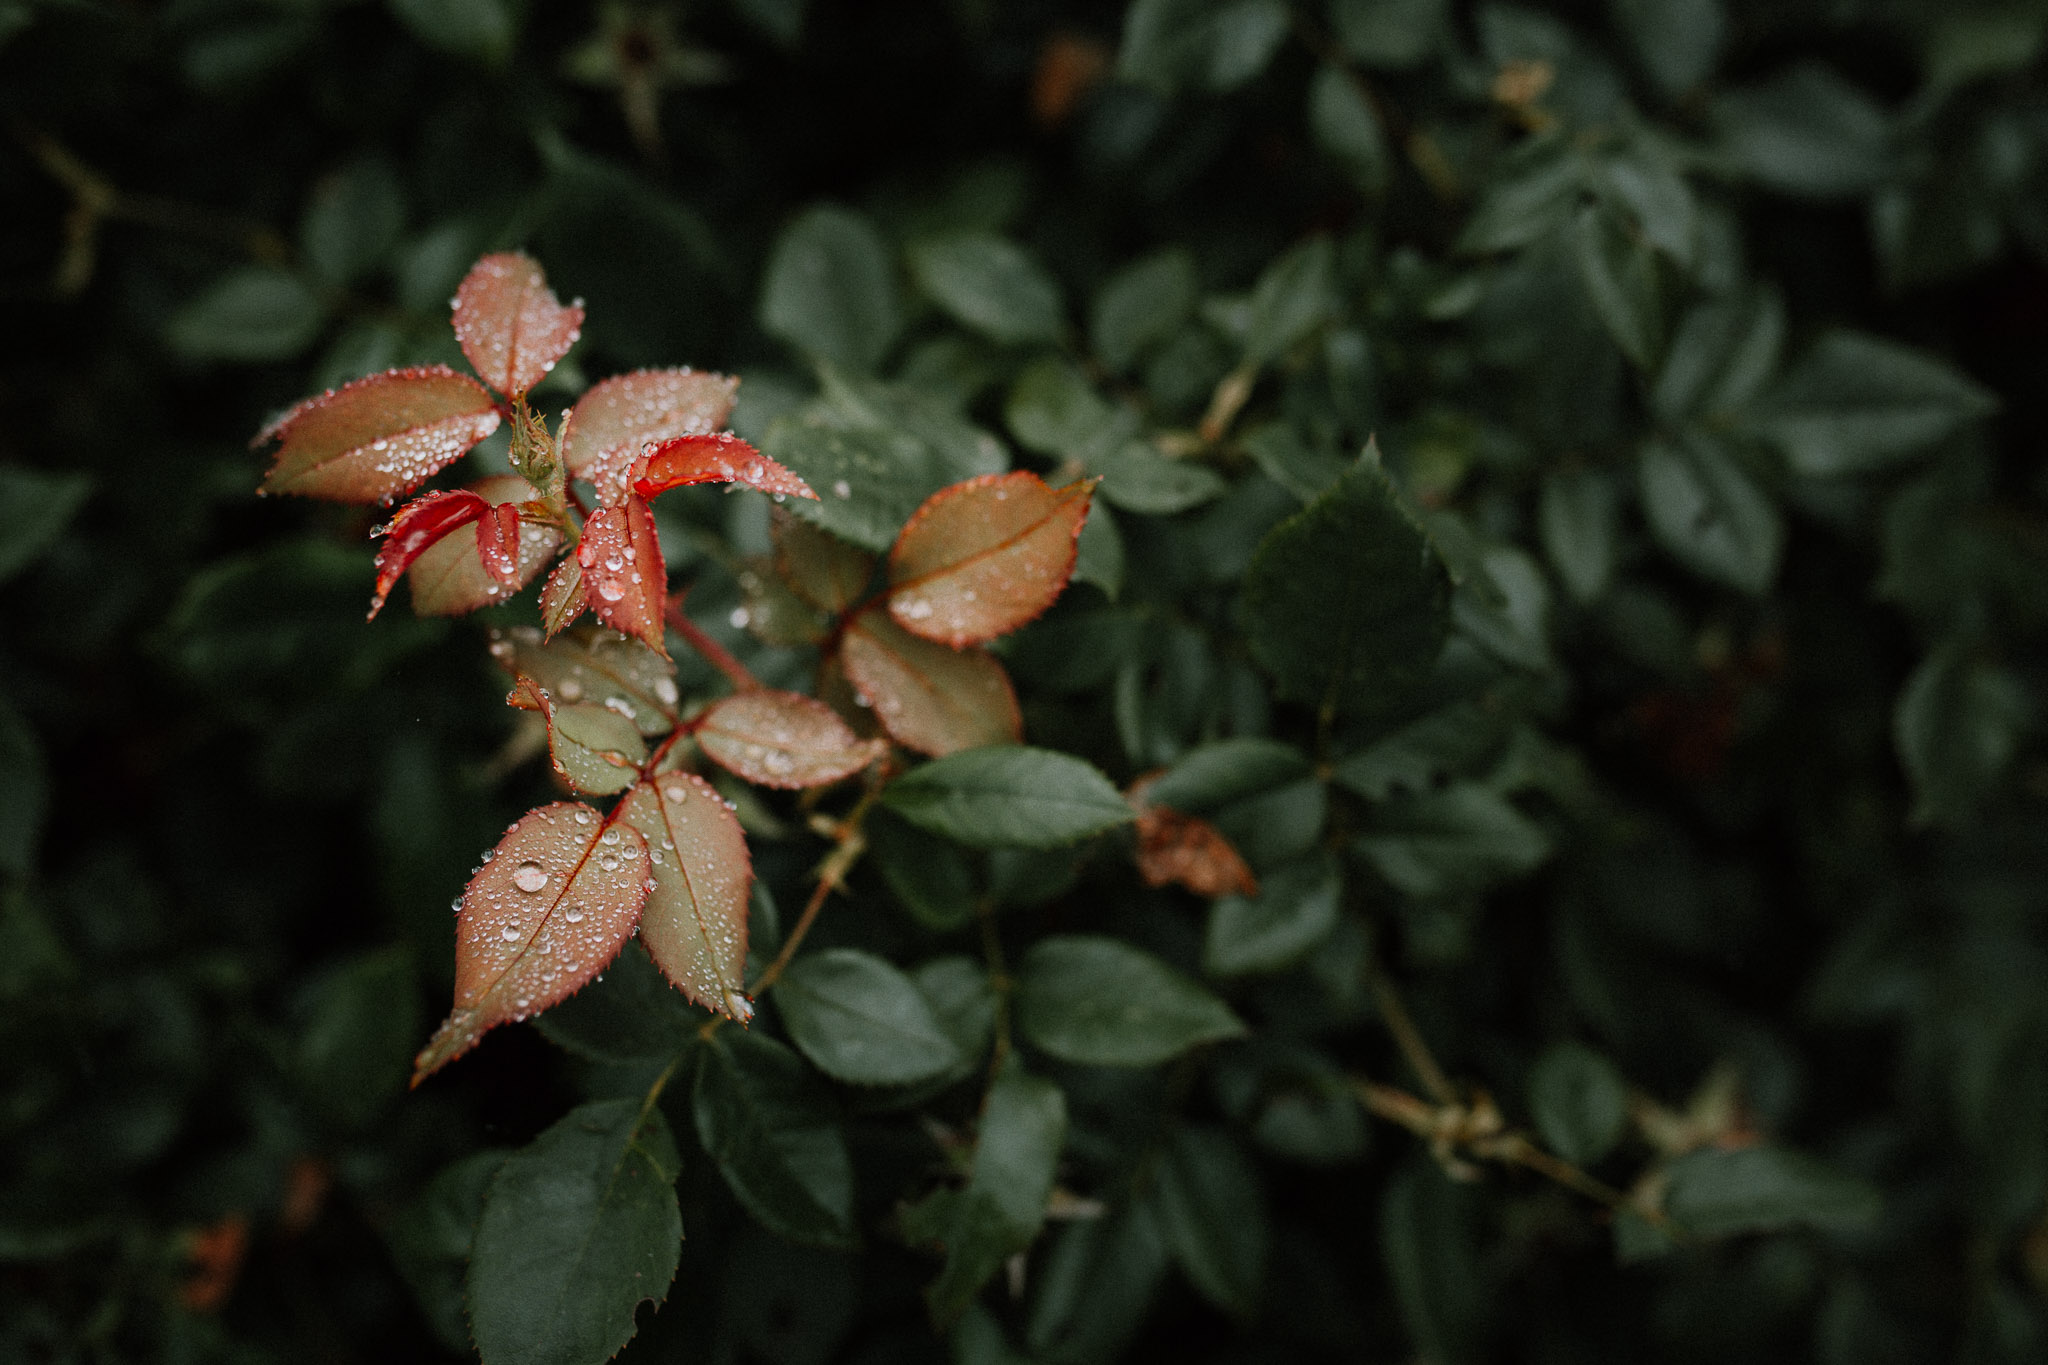 Red and orange leaves covered in dew drops against a background of green leaves